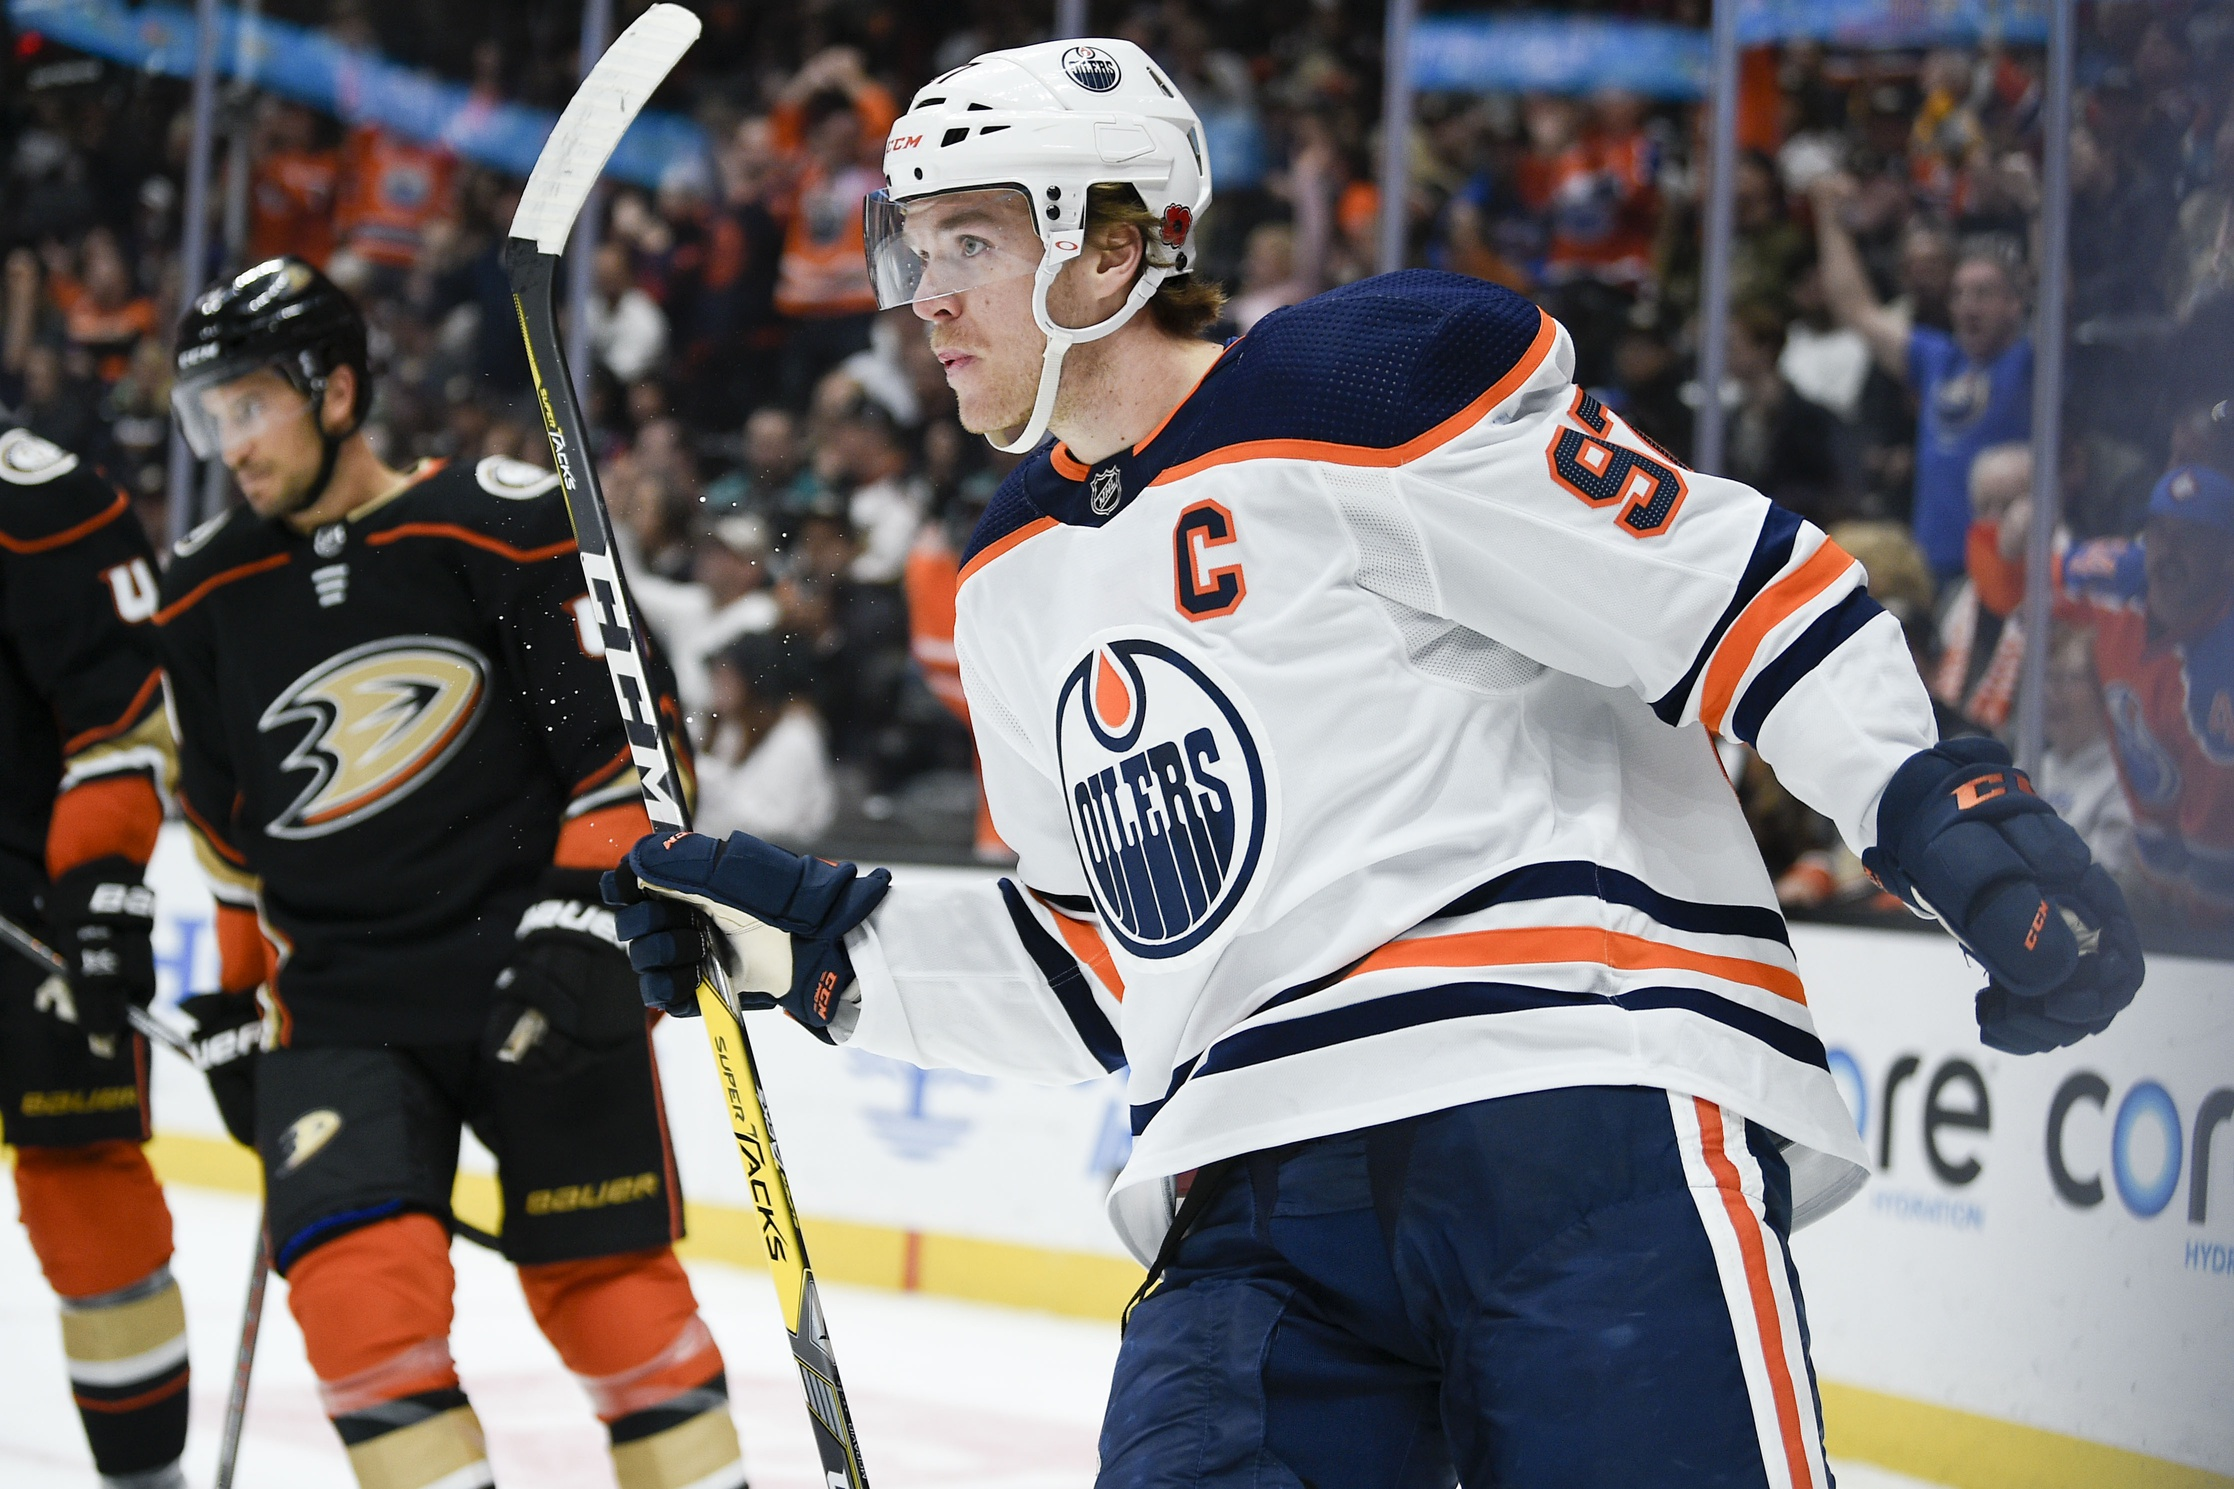 Edmonton Oilers ground Ducks as Connor McDavid nets hat trick